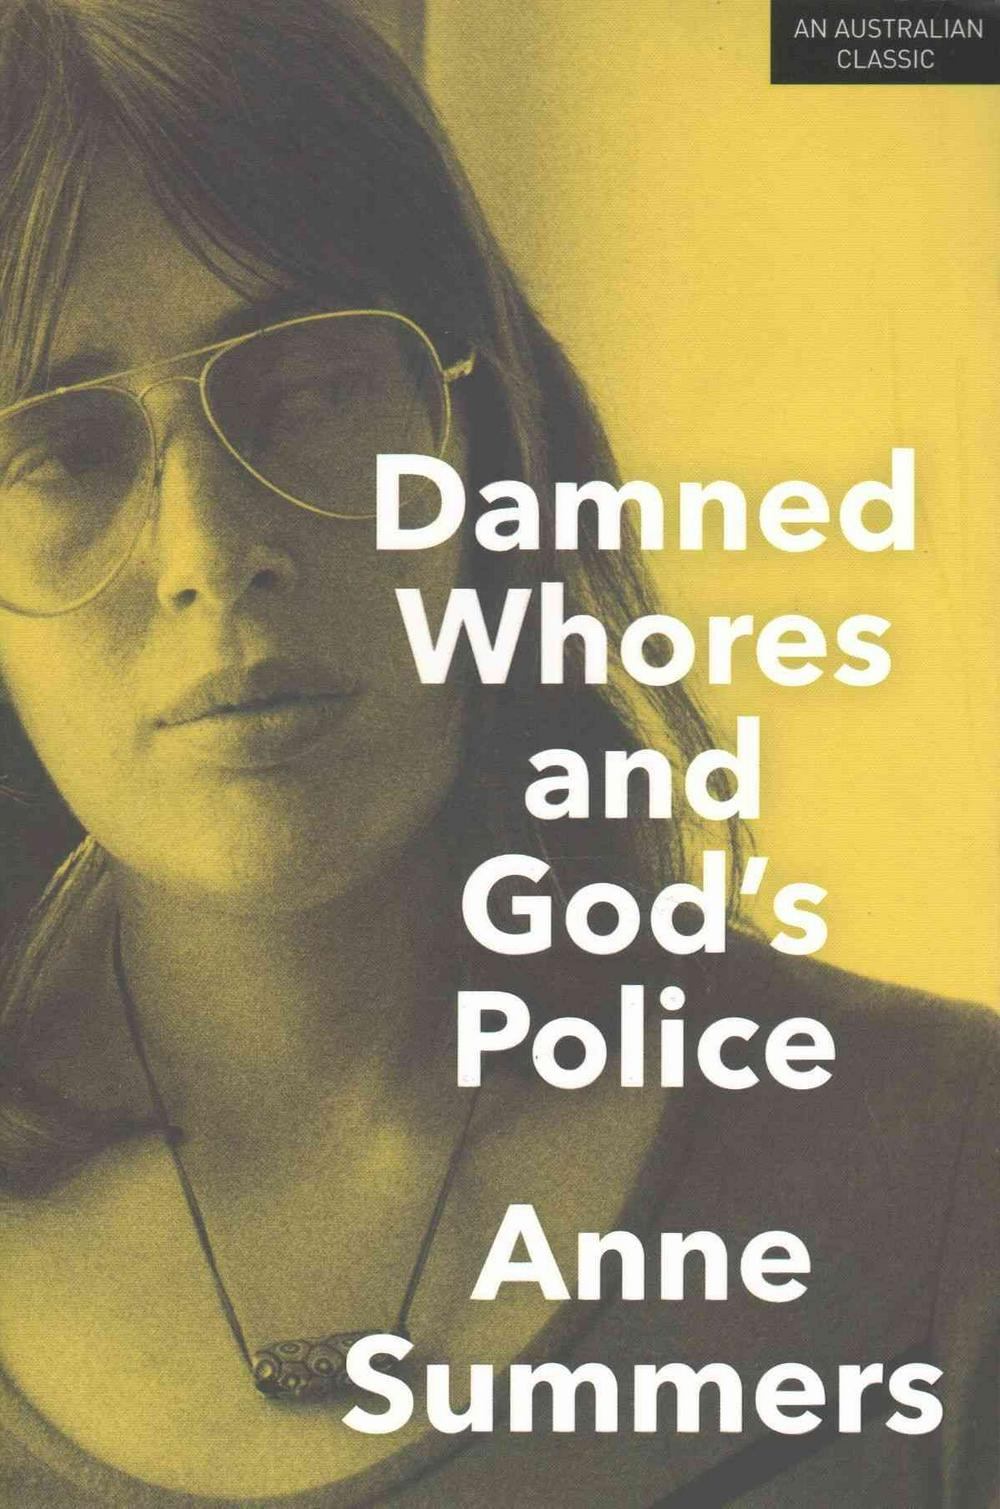 Damned Whores and God's Police by Anne Summers, ISBN: 9781742234908